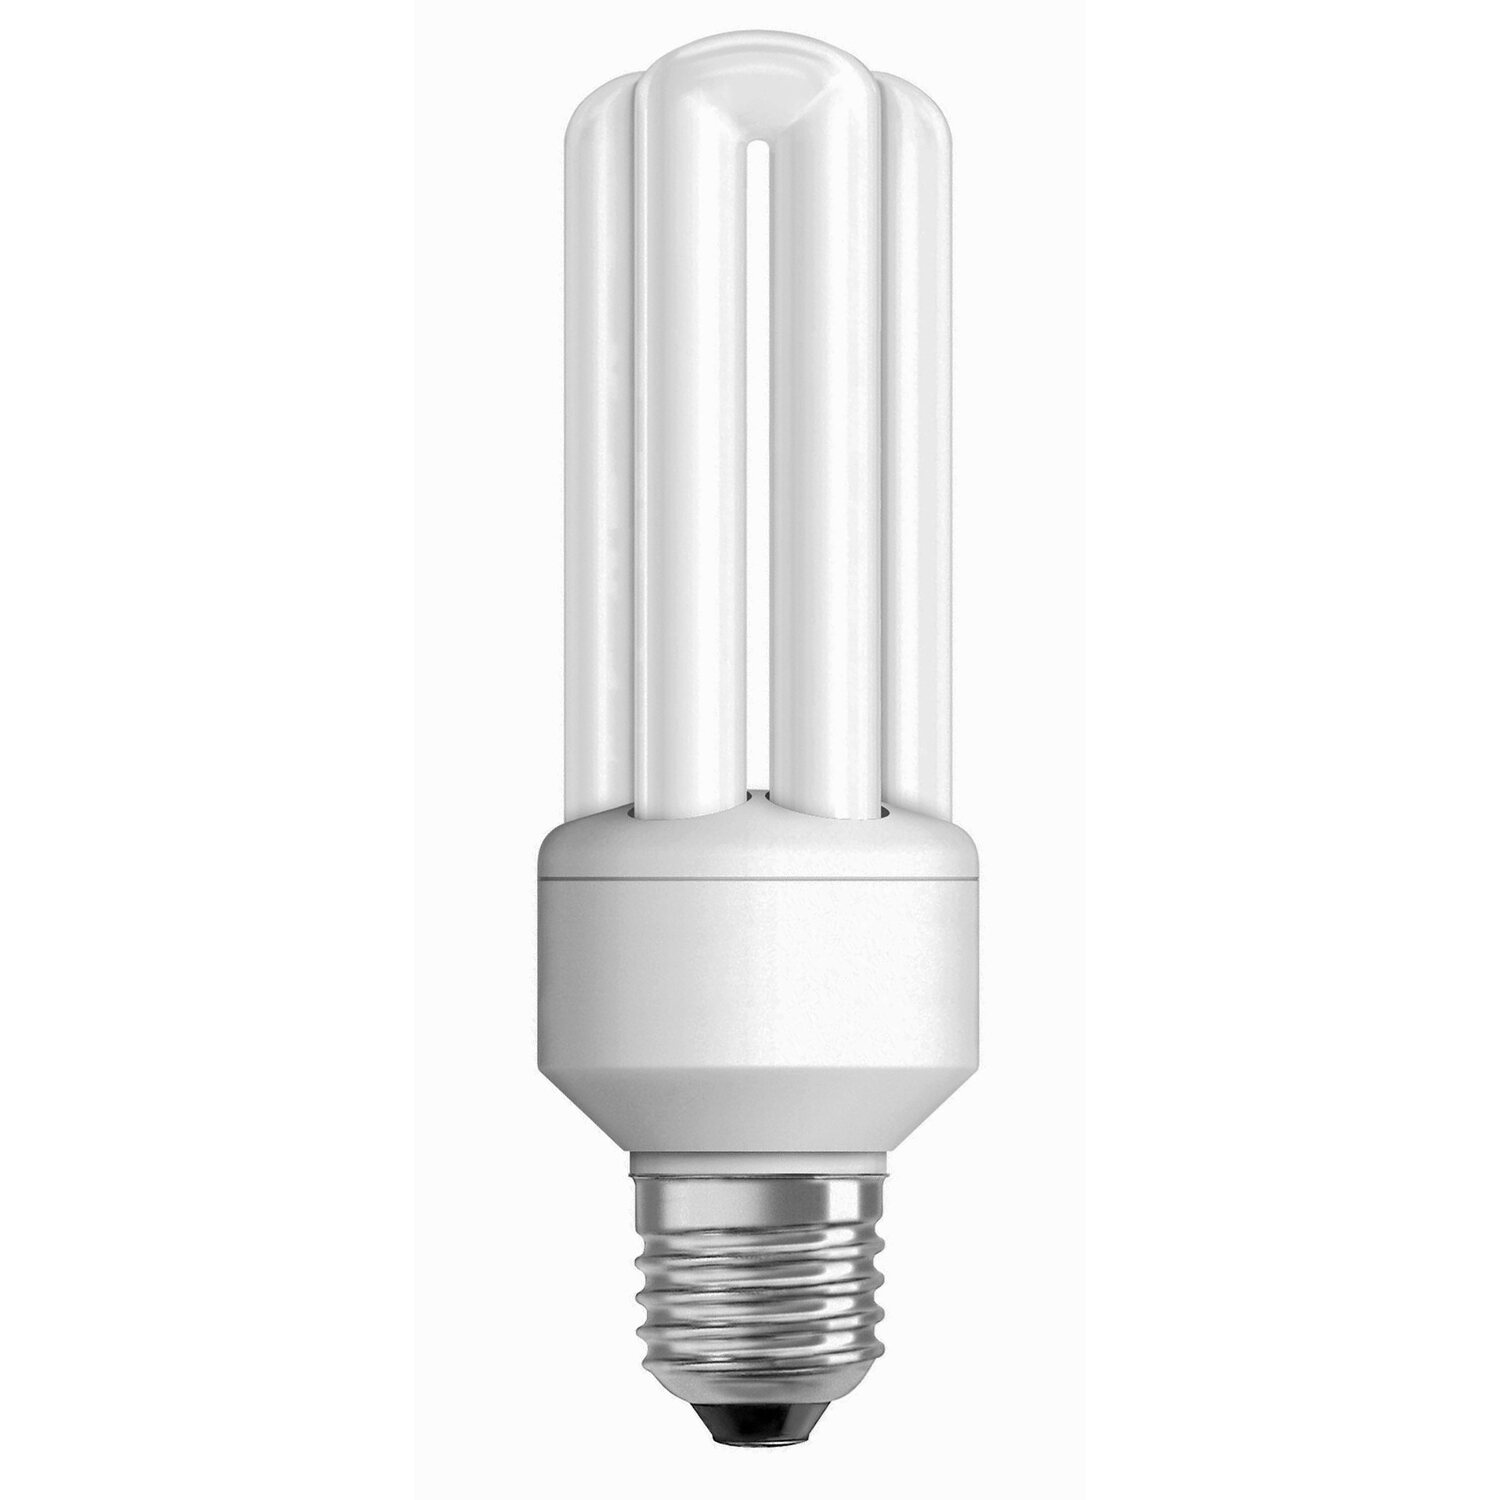 Osram Energiesparlampe Stabform E27 / 15 W (840...